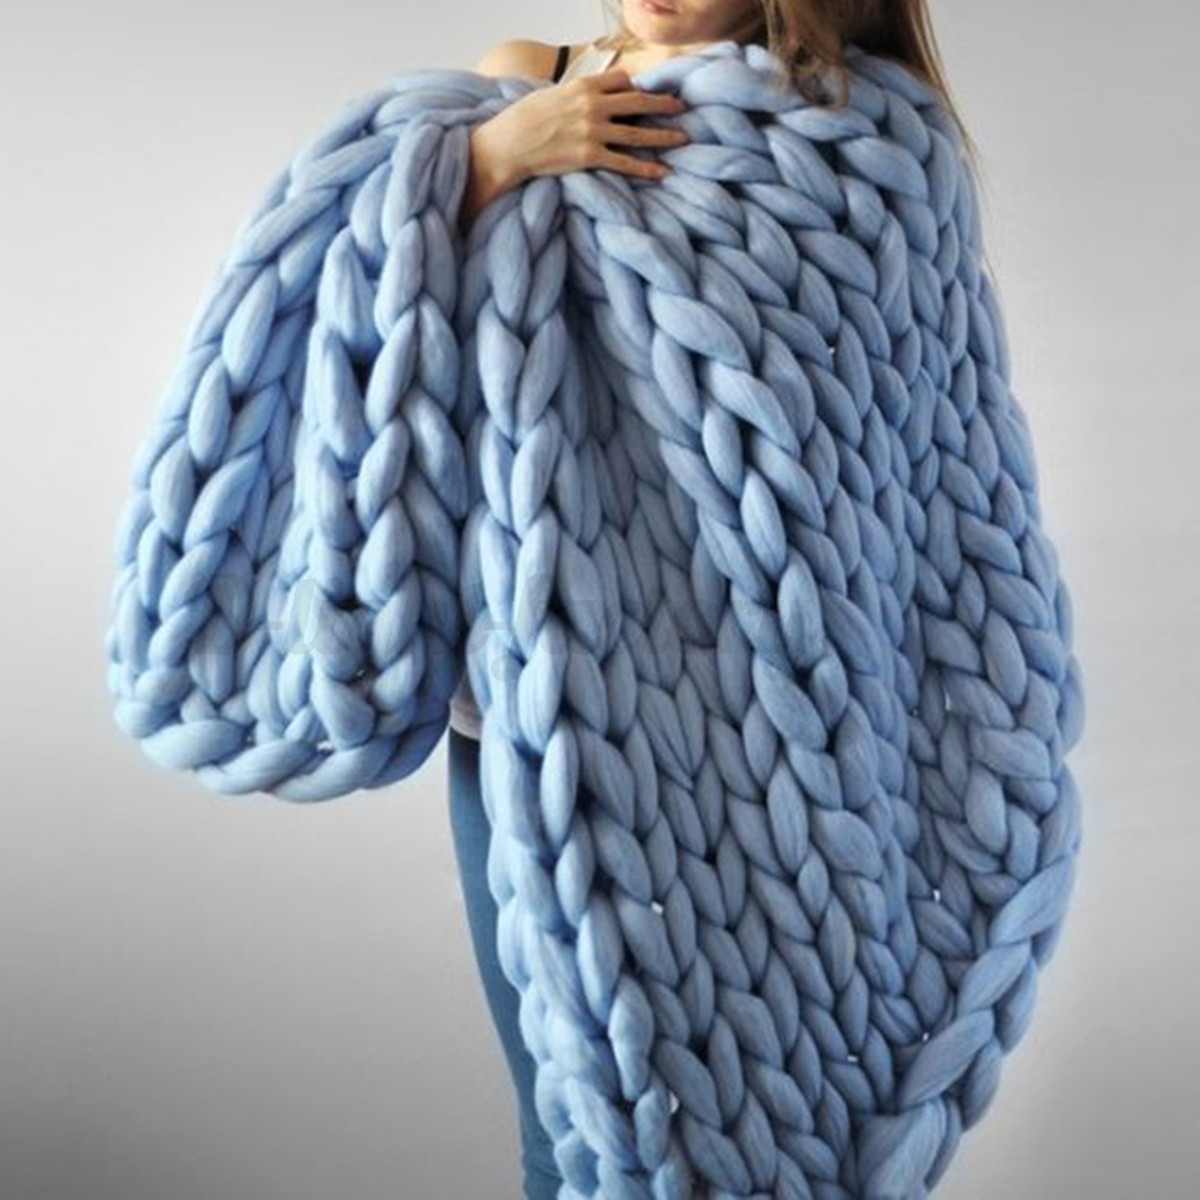 Large Soft Warm Hand Chunky Knit Blanket Thick Yarn Wool